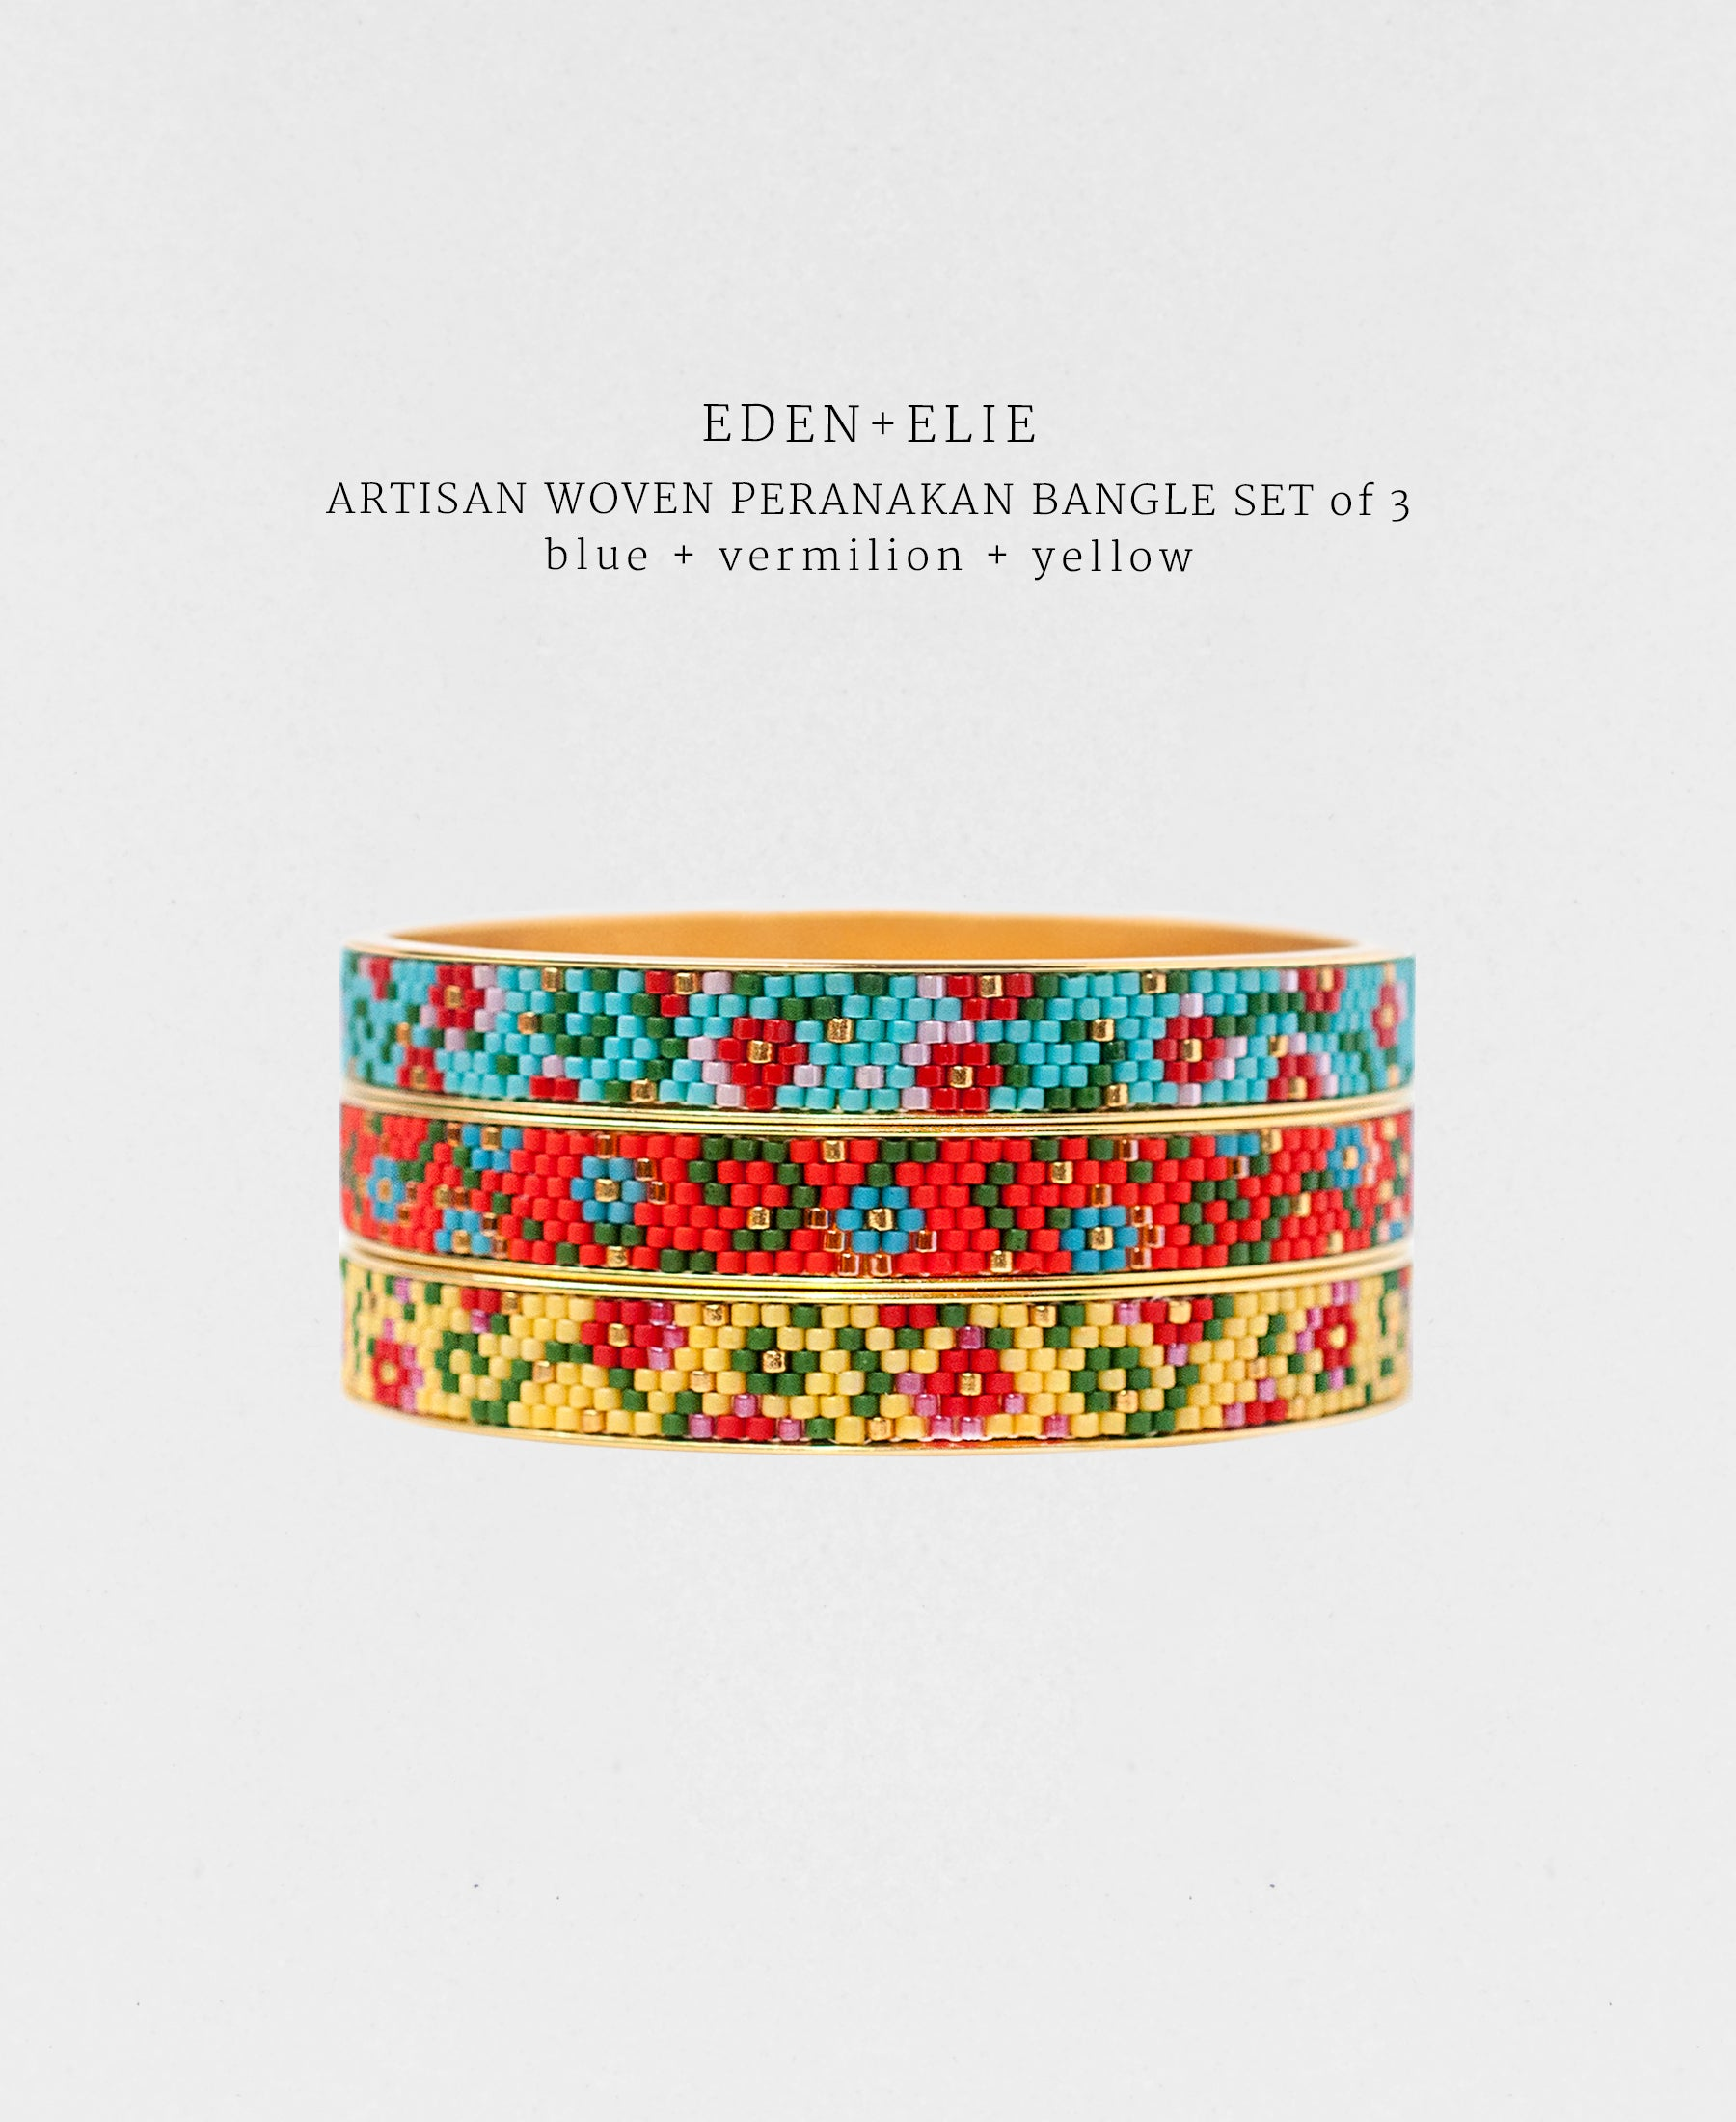 EDEN + ELIE Modern Peranakan gold narrow bangles set of 3 - blue + vermilion + yellow